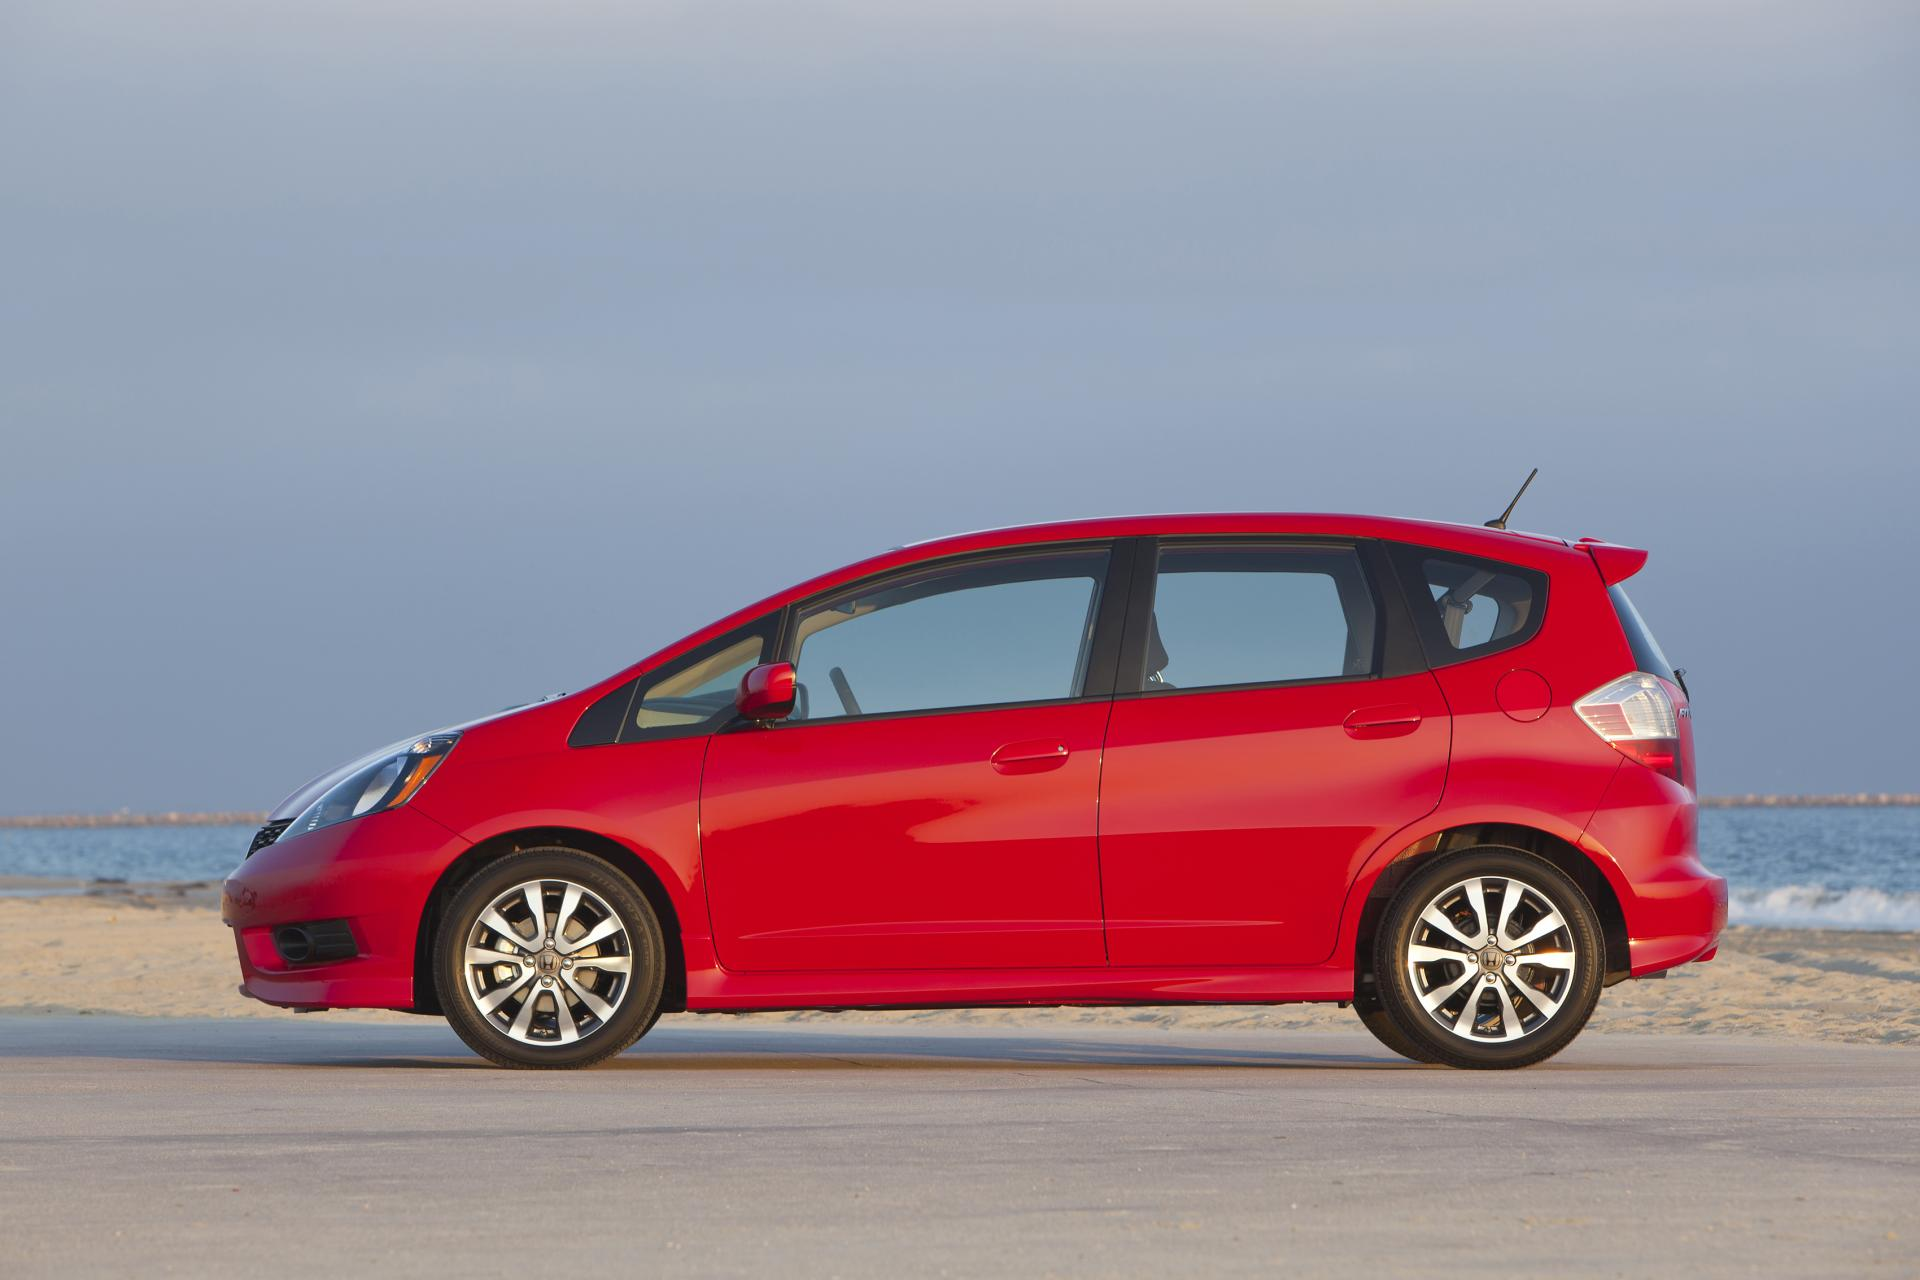 2012 honda fit technical specifications and data engine dimensions and mechanical details. Black Bedroom Furniture Sets. Home Design Ideas